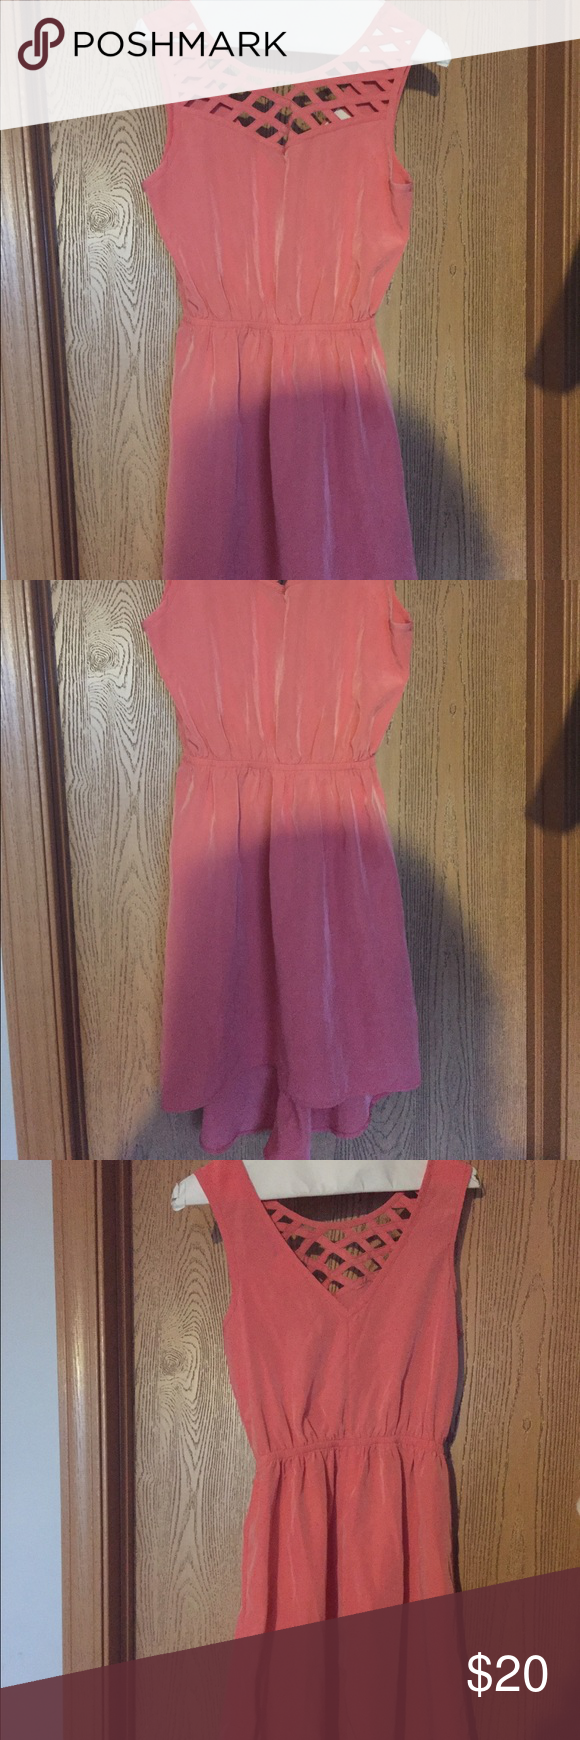 """High/Low Peach Dress, Size S High/low dress that was worn only once. The dress is about 24"""" in the front and 28"""" in the back. It is 100% polyester. one clothing Dresses High Low"""